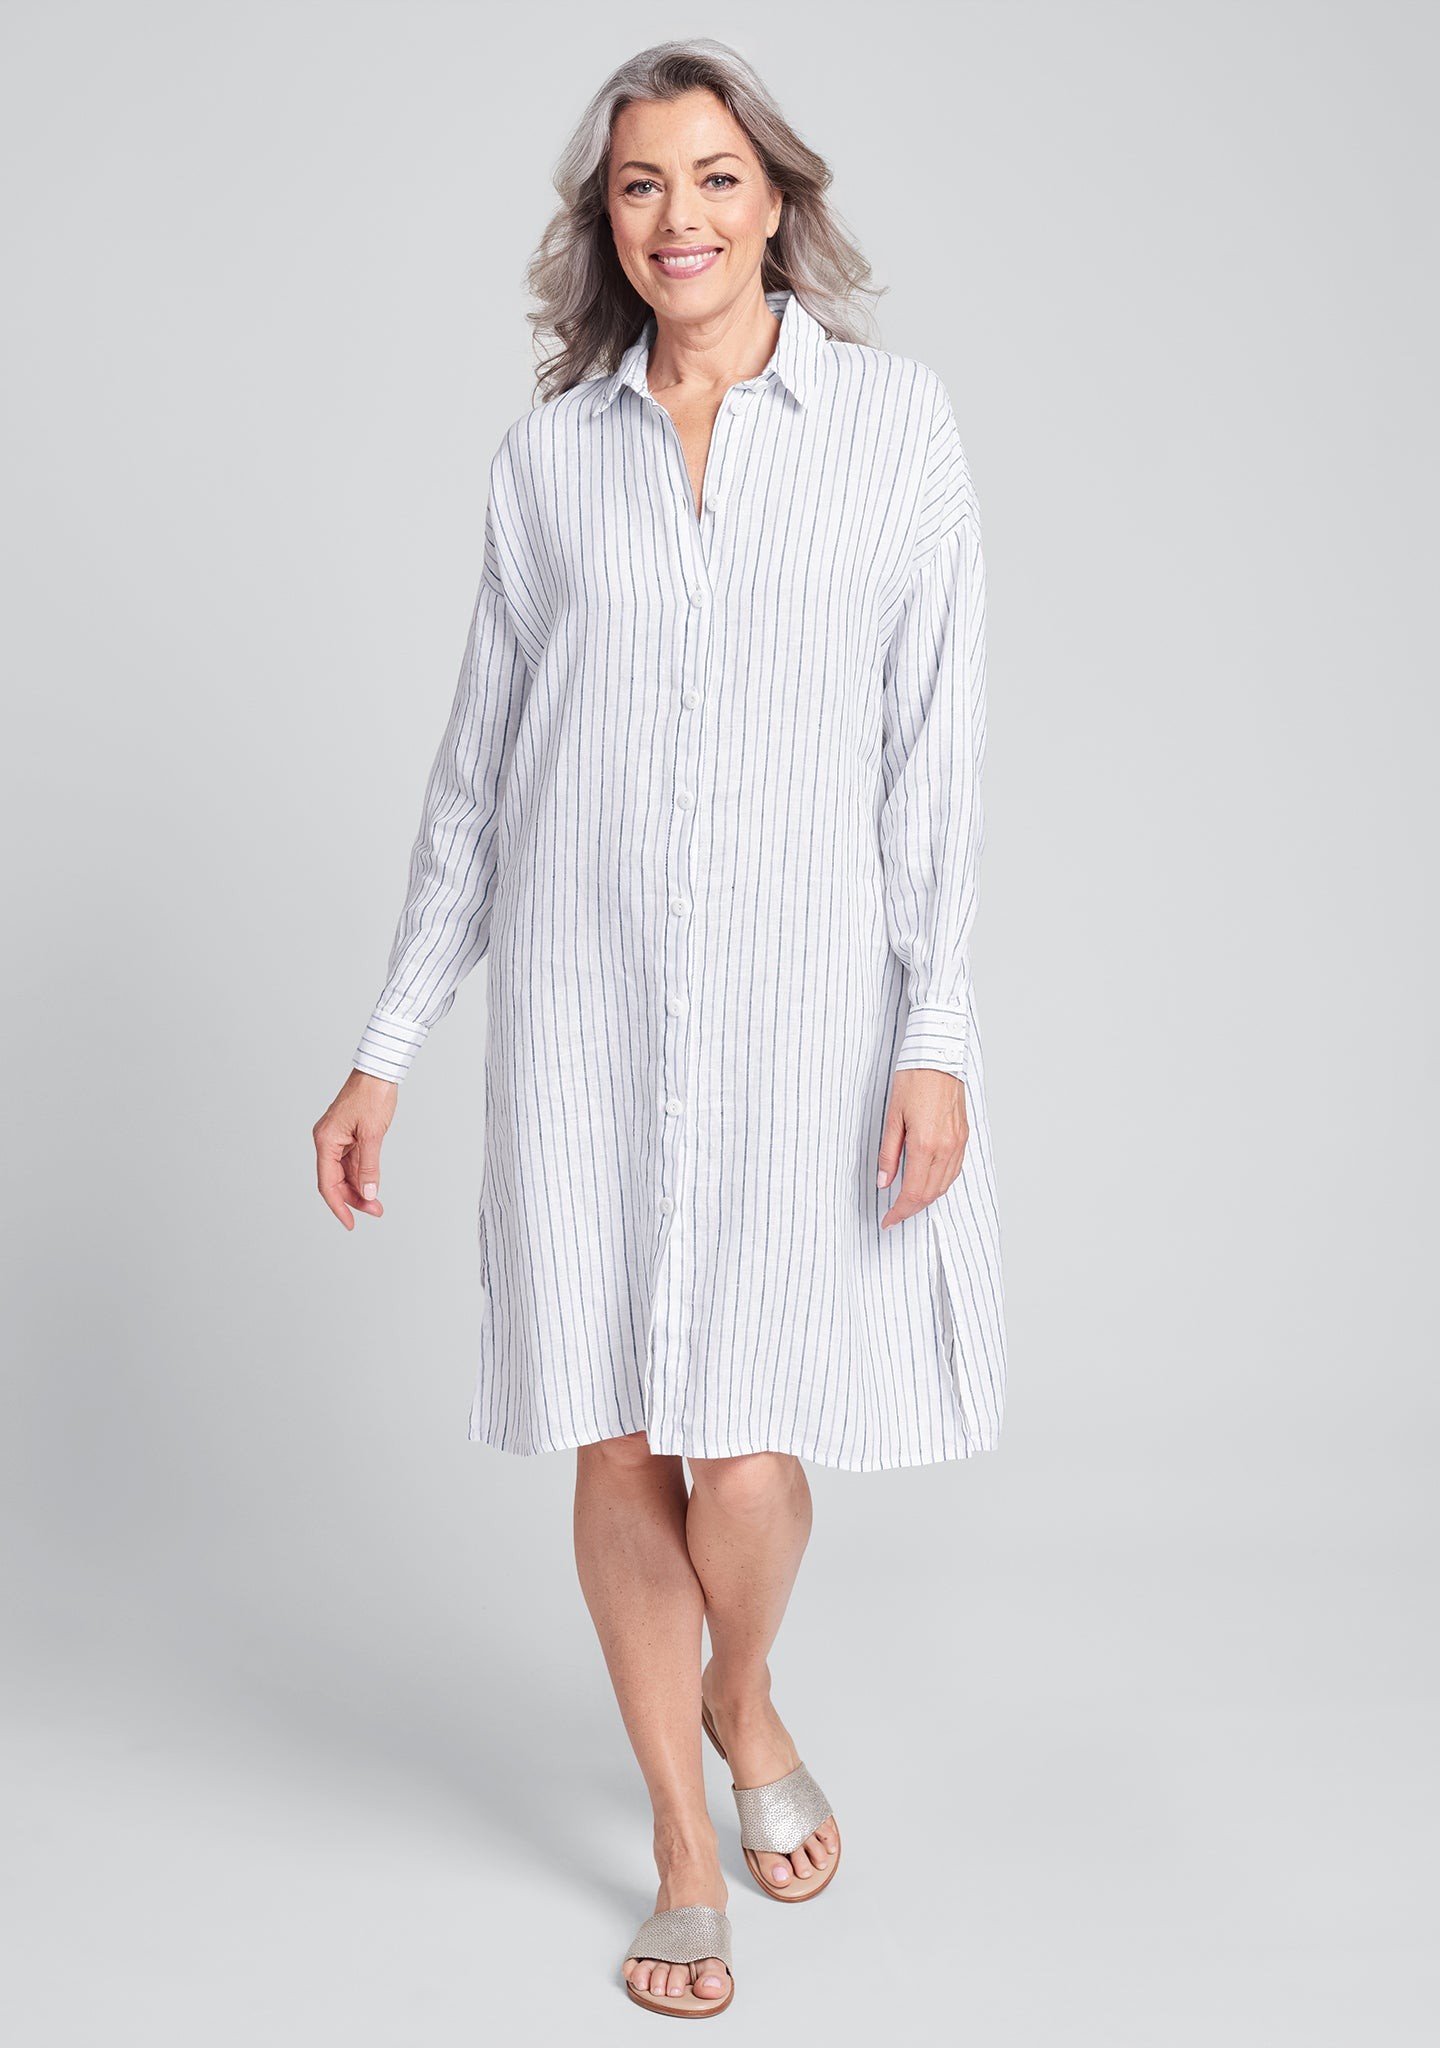 shirtdress linen shirt dress blue